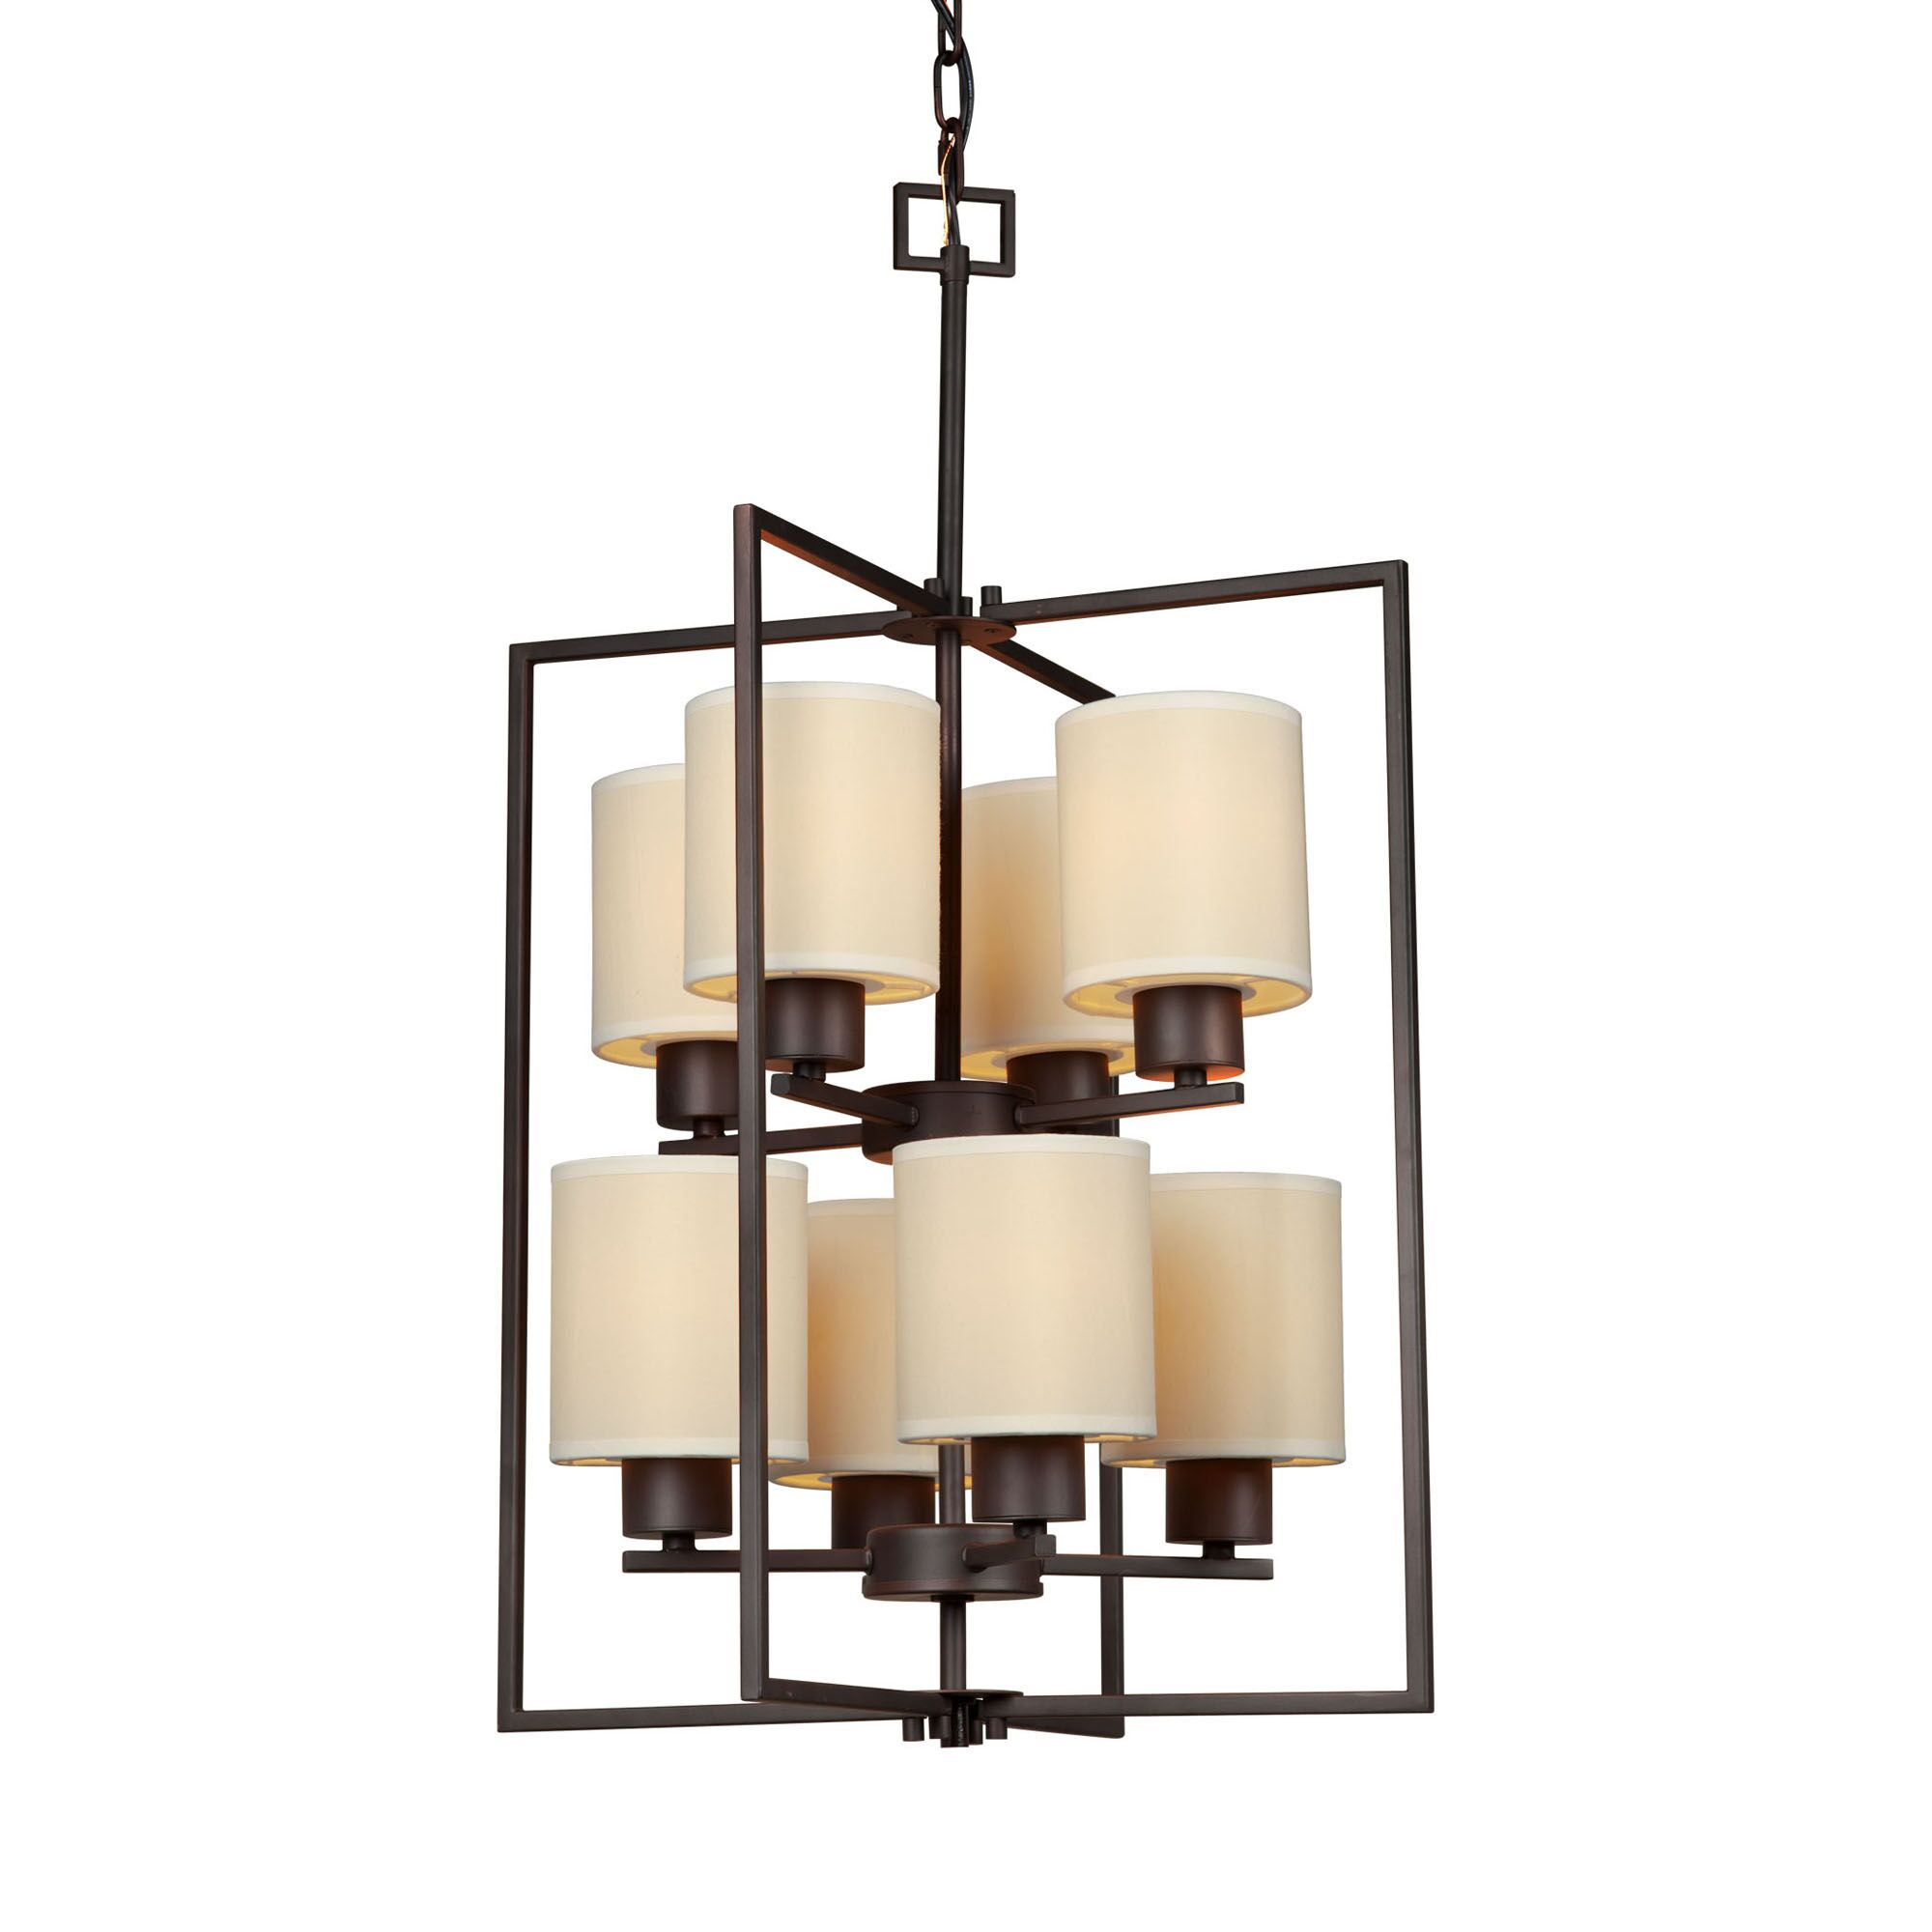 Features: -Material: Steel.-Fixture Design: Shaded Chandelier.-Number of Lights: 8.-Number of Tiers: 2.-Light Direction: Ambient.-Finish: Antique Bronze.-Style: Modern & Contemporary.-Shade Included: Yes -Shade Color: Cream.-Shade Material: Fabric..-P...